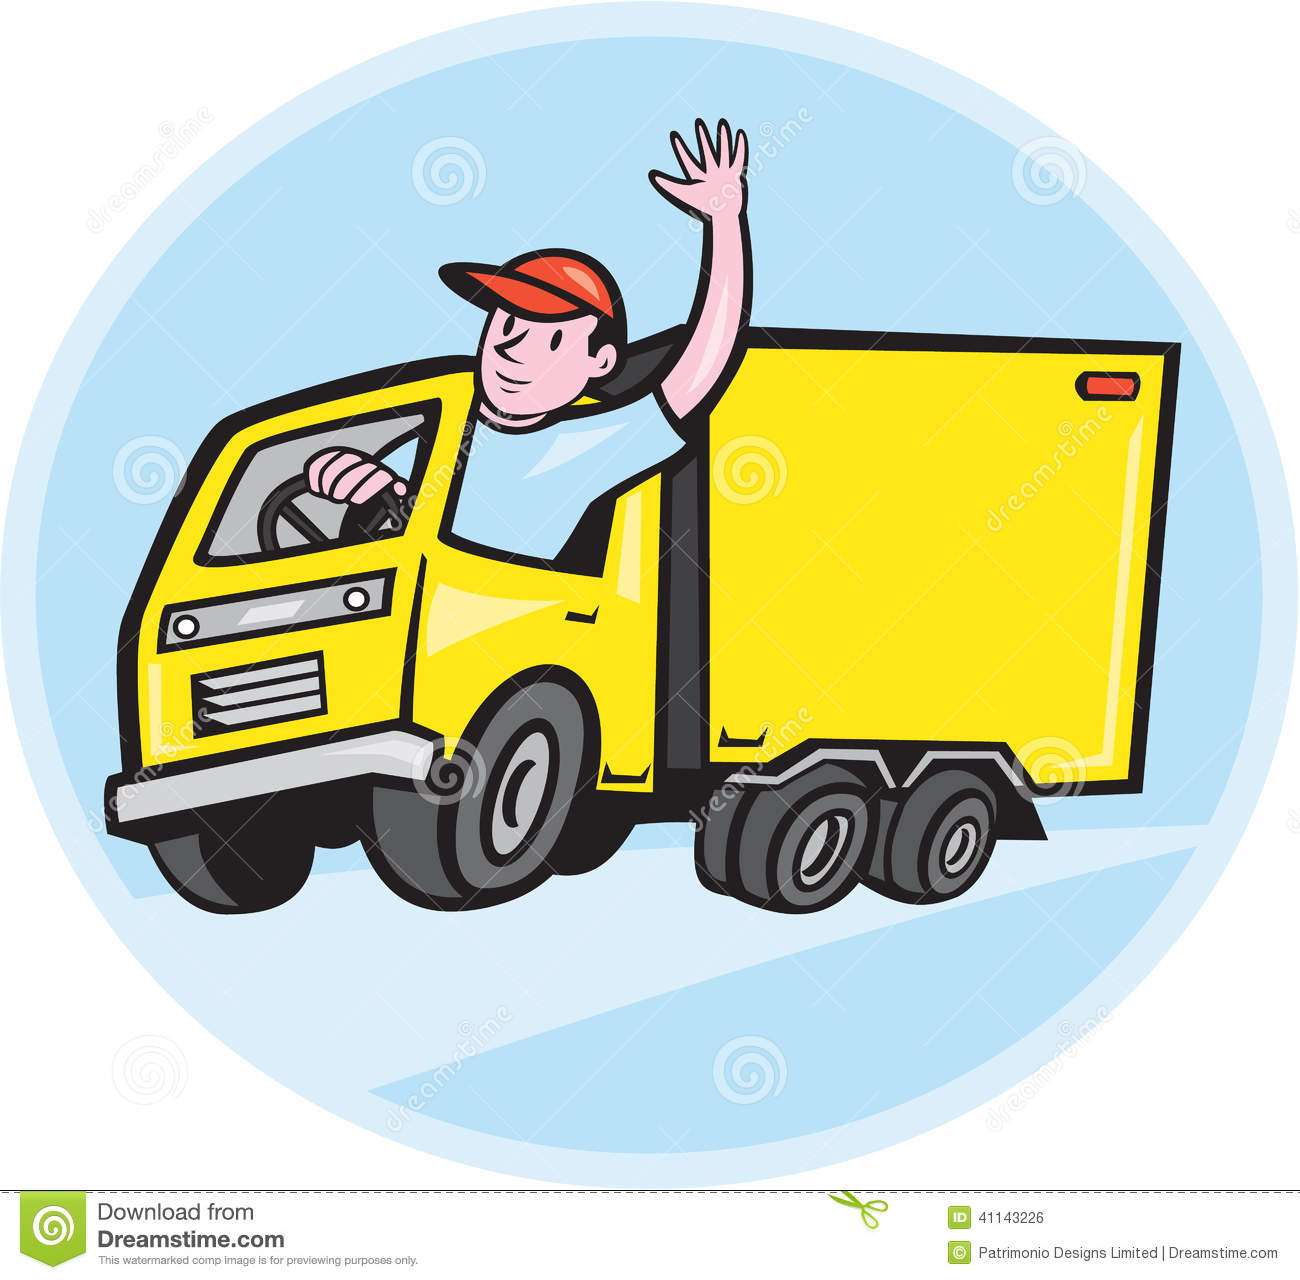 Illustration Of A Delivery Truck Lorry With Driver Waving Done In